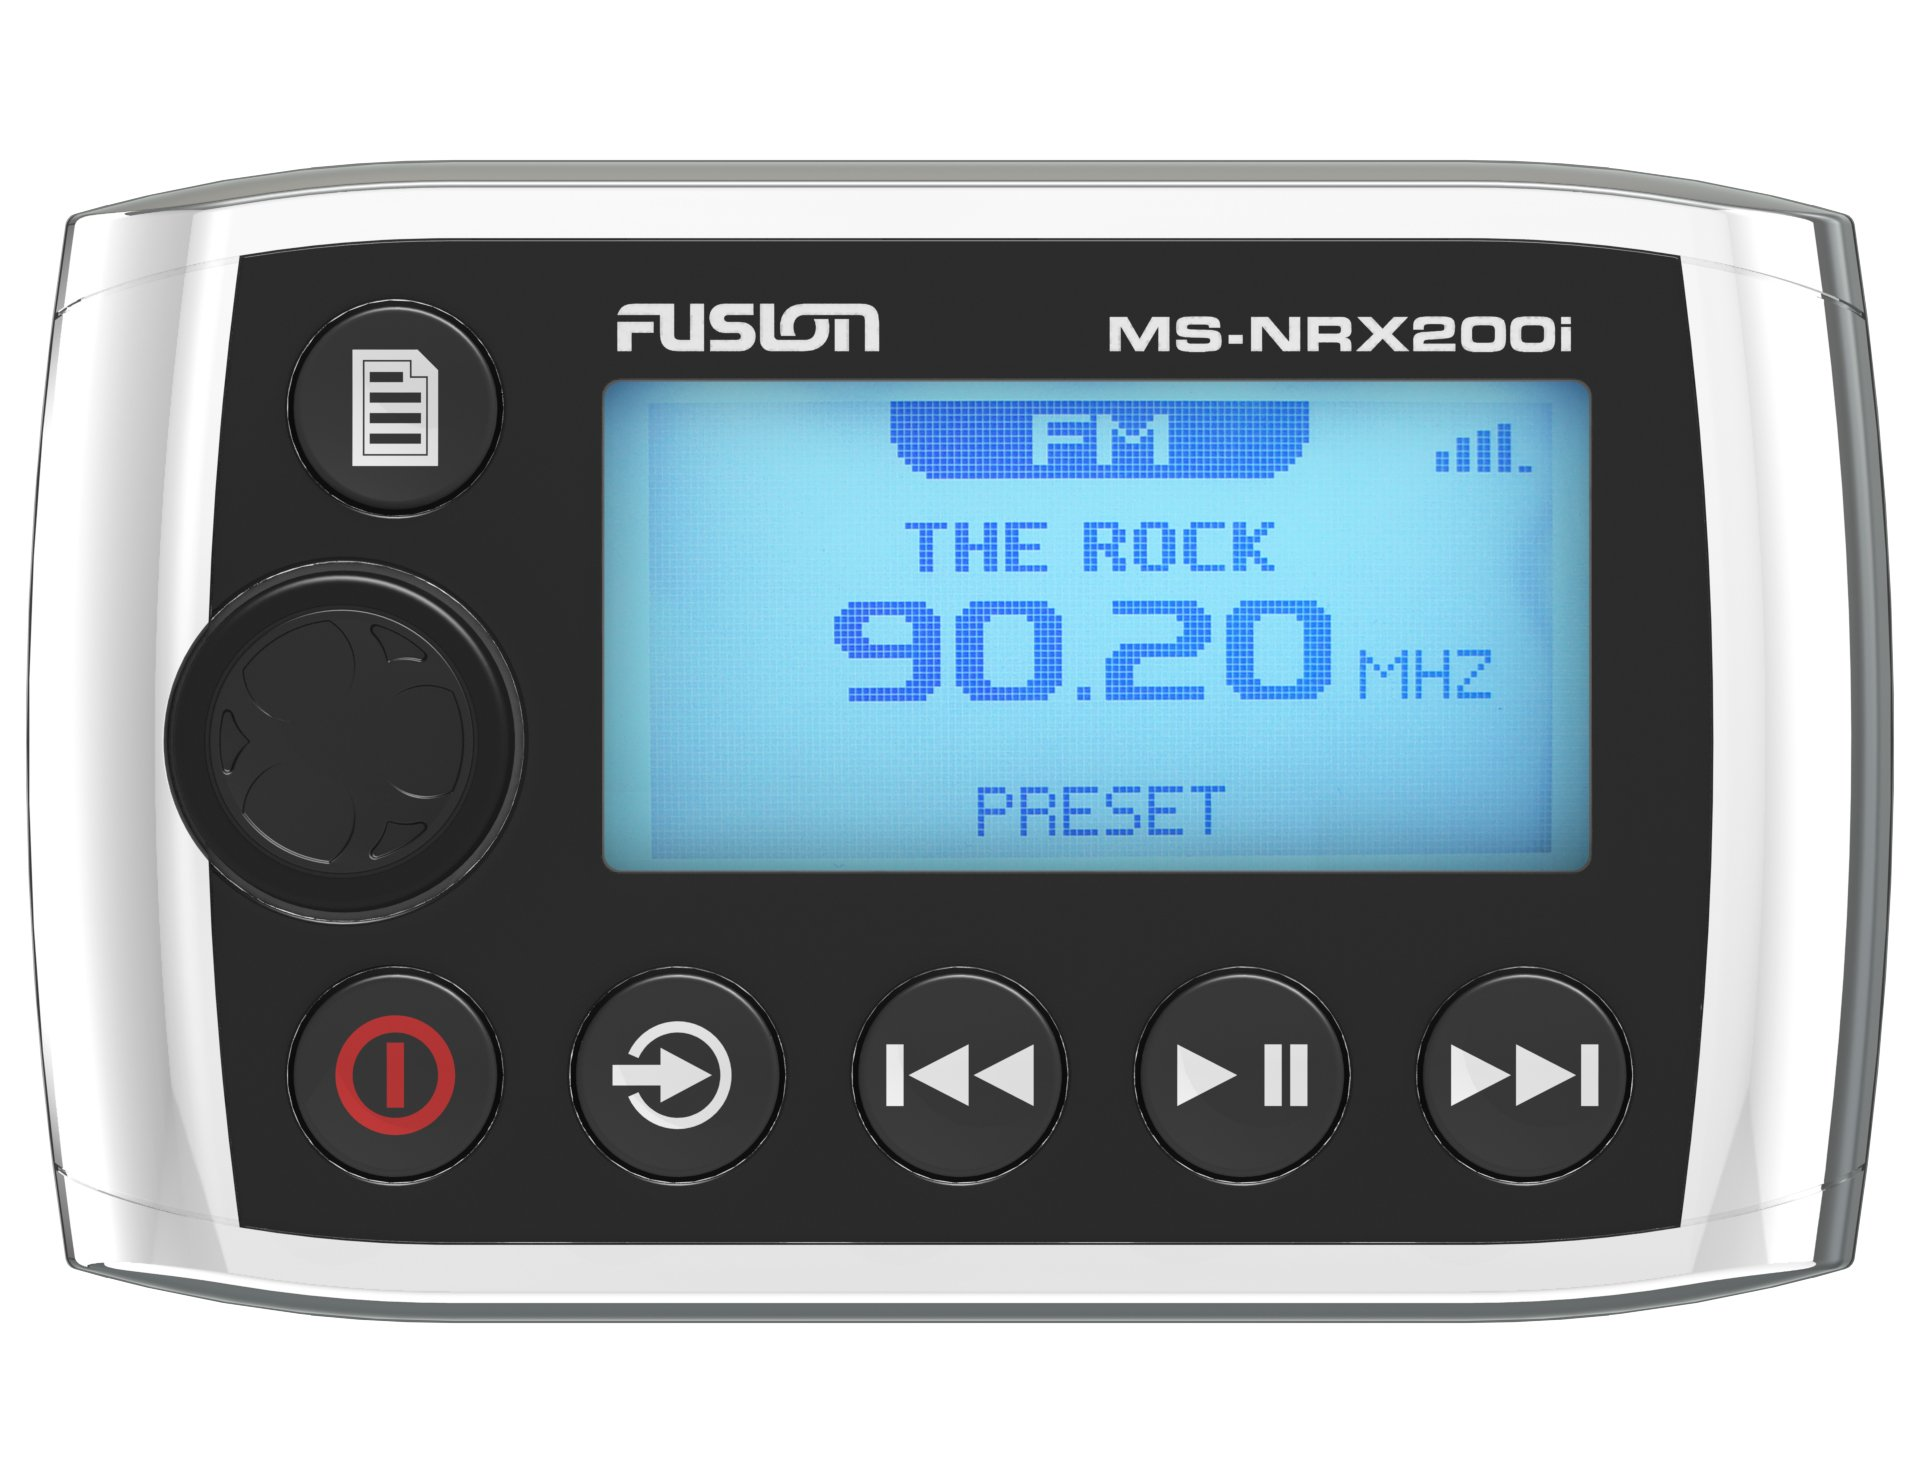 Fusion MS-NRX200i Marine Wired Remote for MS-IP700i, MS-AV700i and MS-RA205 by Fusion